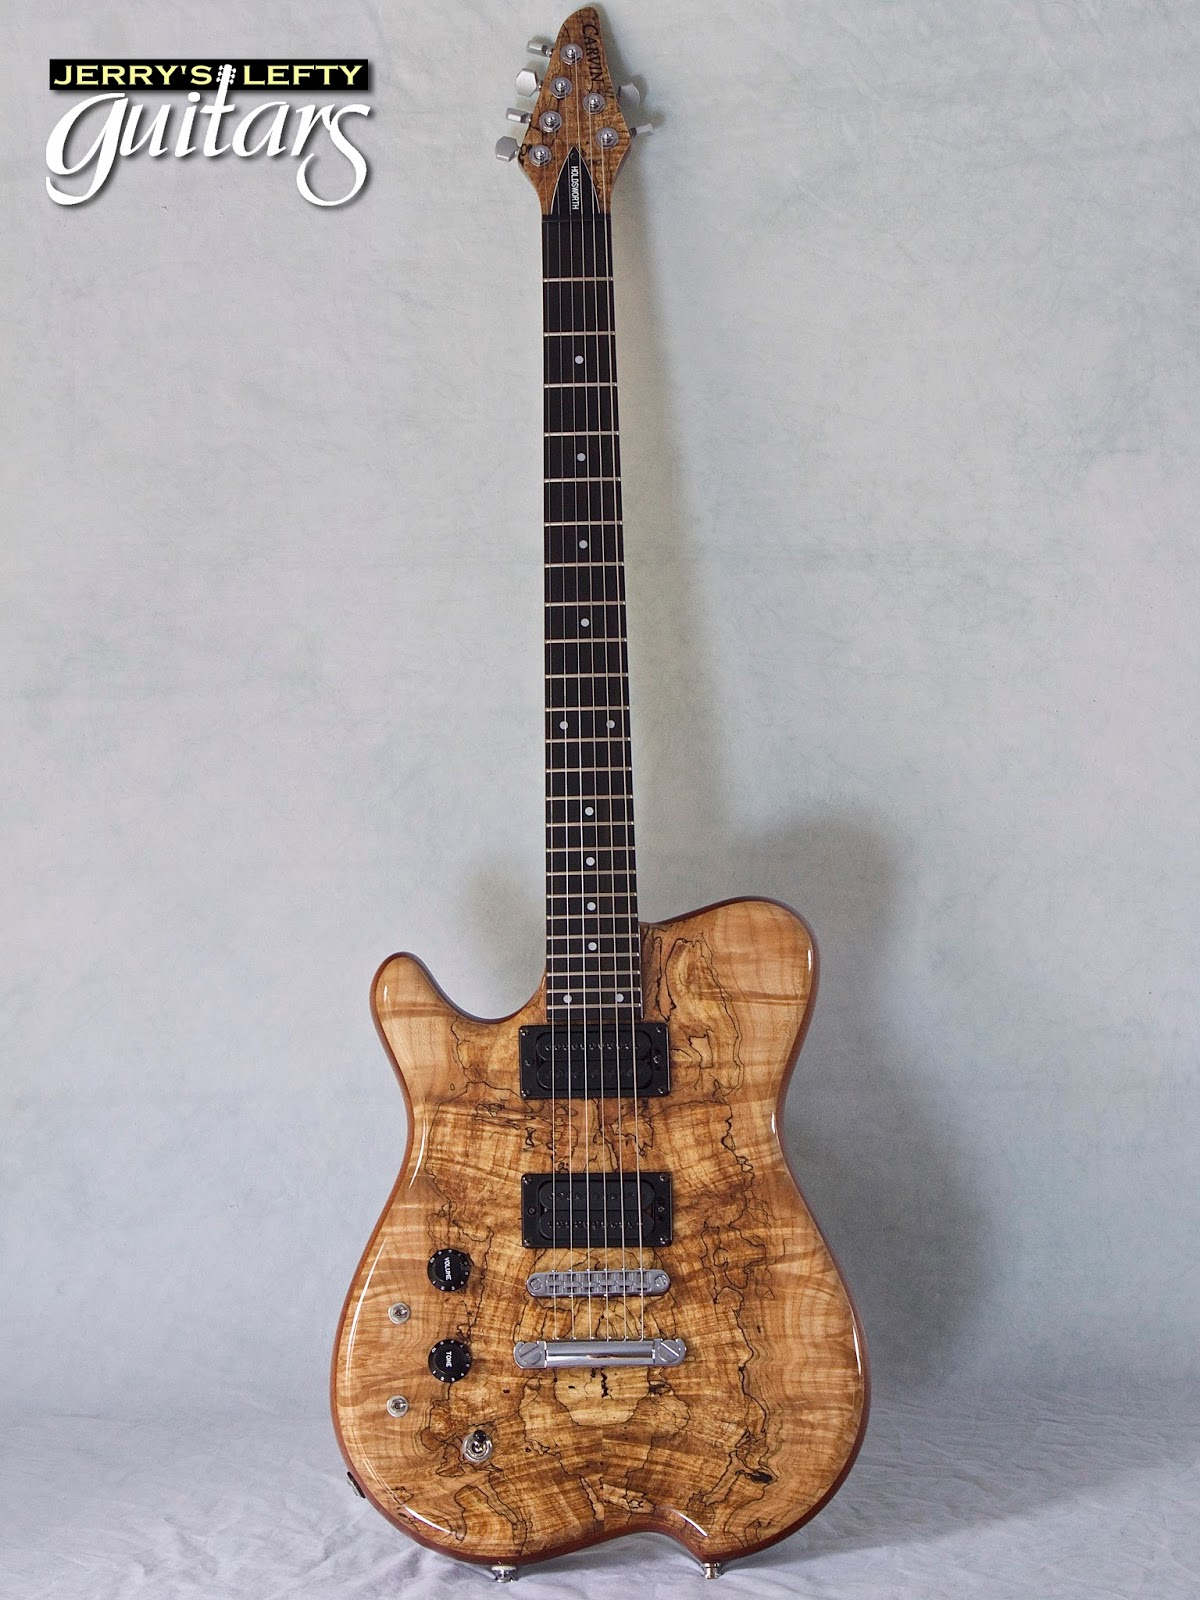 Jerry U0026 39 S Lefty Guitars Newest Guitar Arrivals  Updated Weekly   Carvin Holdsworth Spalted Maple